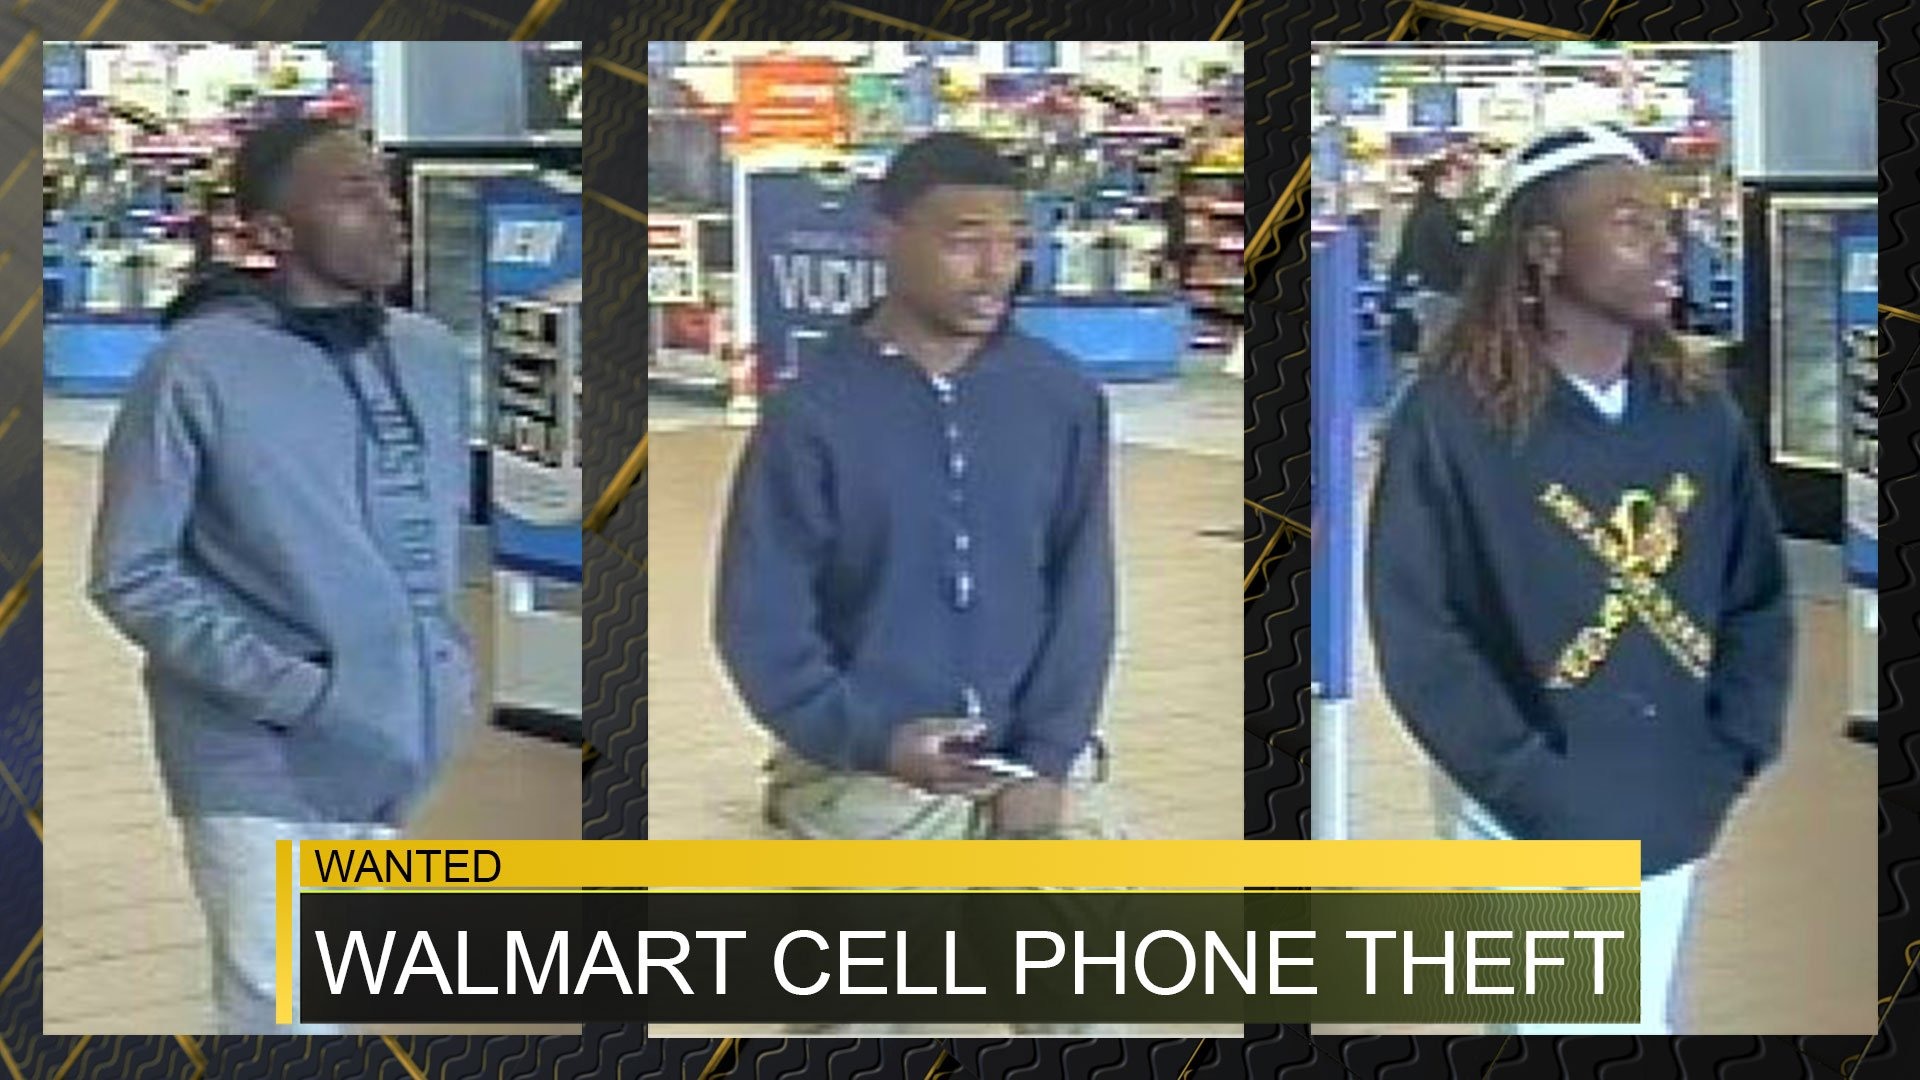 3 wanted for stealing mobile phones from bobby jones walmart fox bobby jones expressway walmart mobile phone theft suspects source columbia county sheriff s office